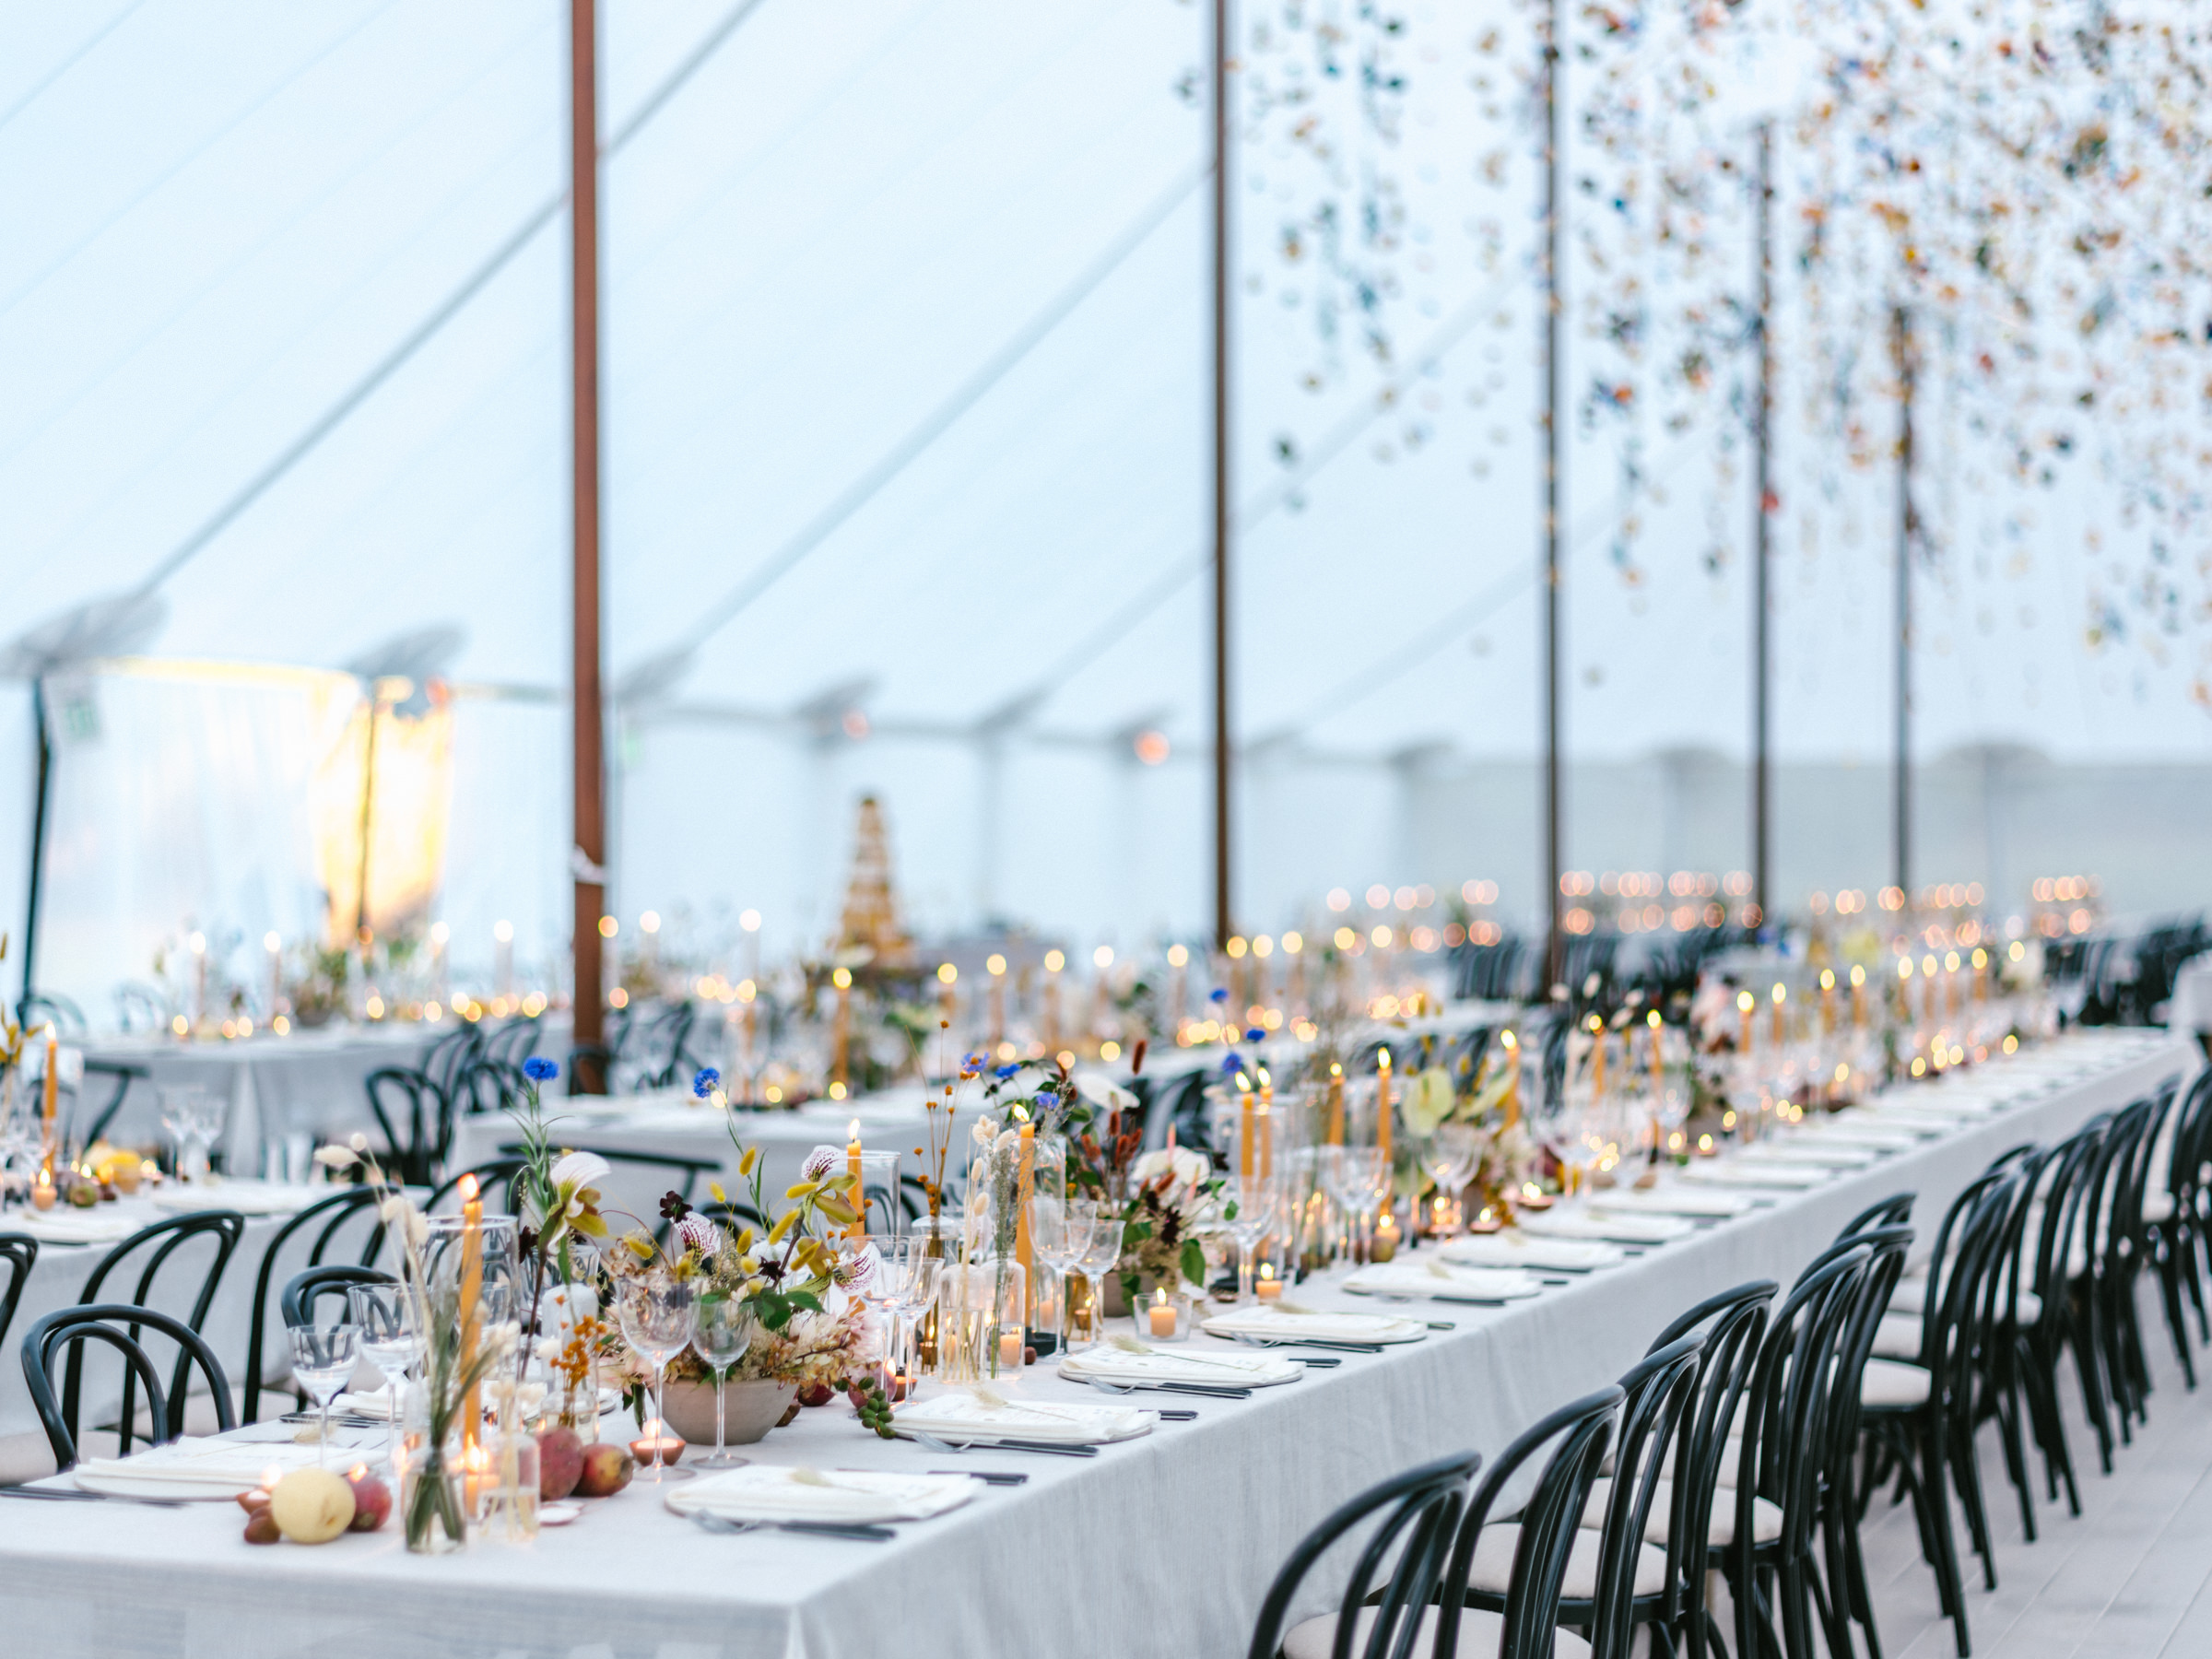 Long table with place settings and hanging strings of flowers  - photo by Amy and Stuart Photography